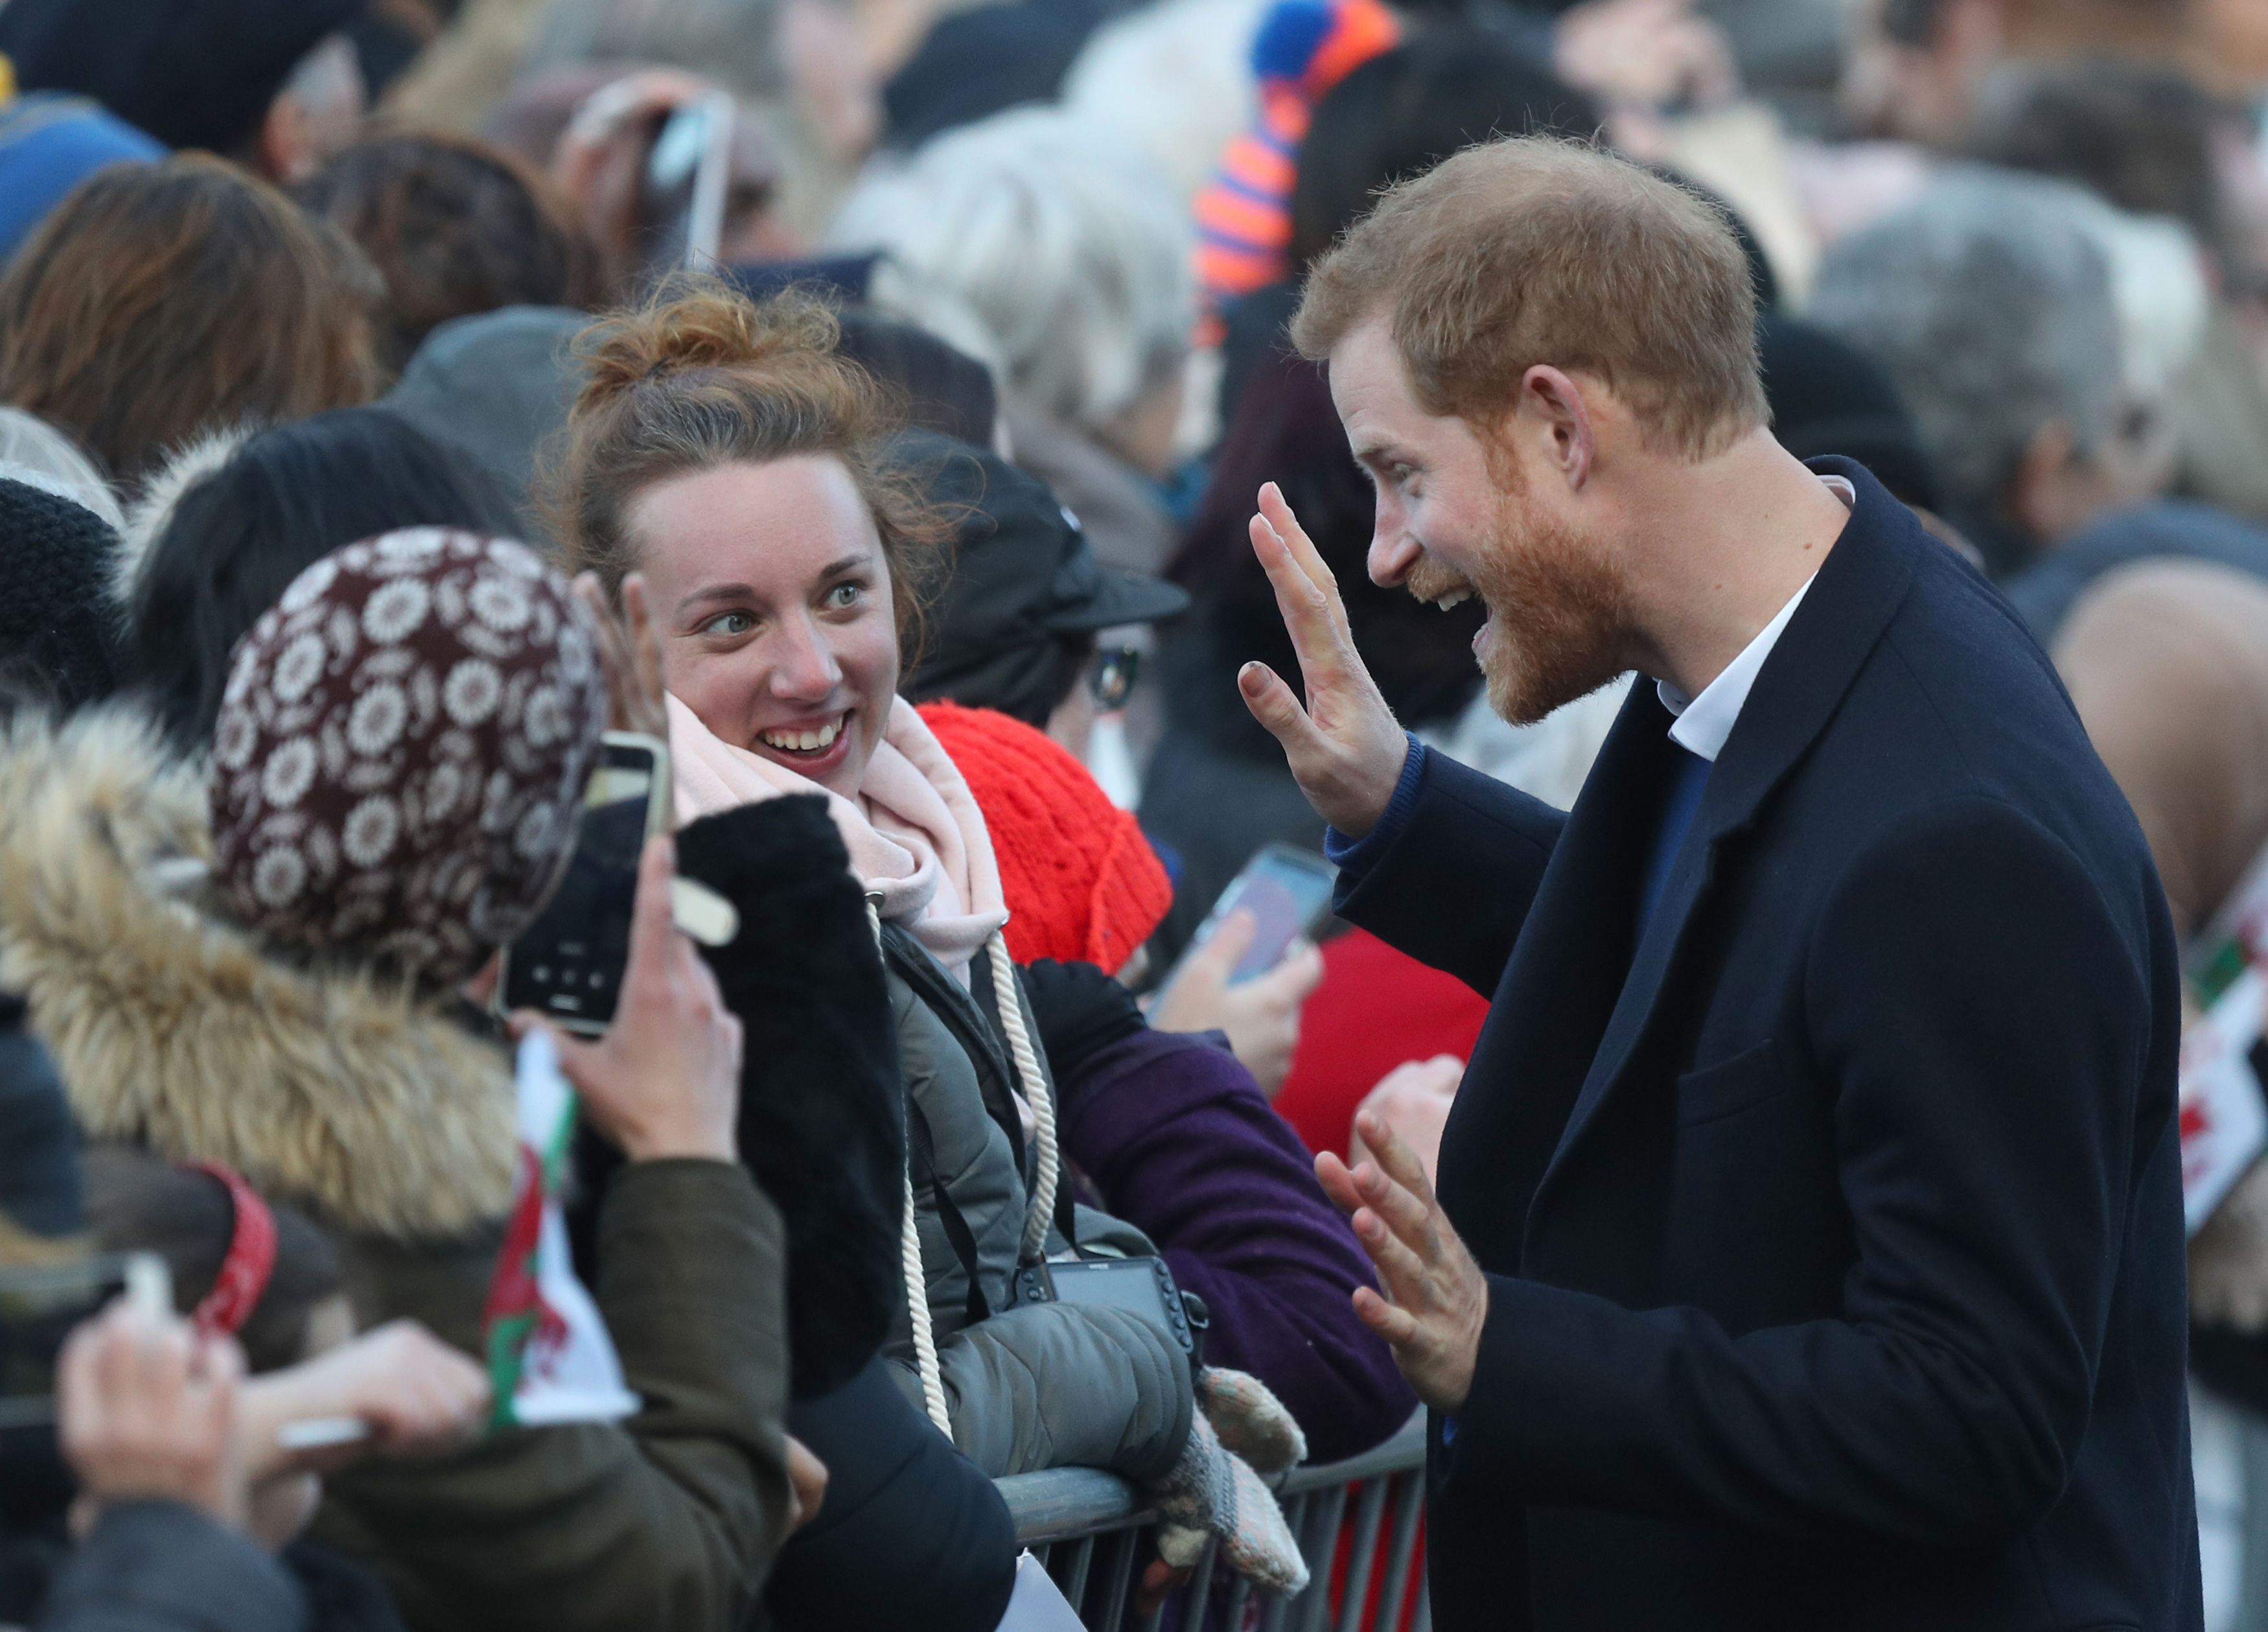 Prince Harry greets well-wishers in Cardiff Andrew Matthews/PA)